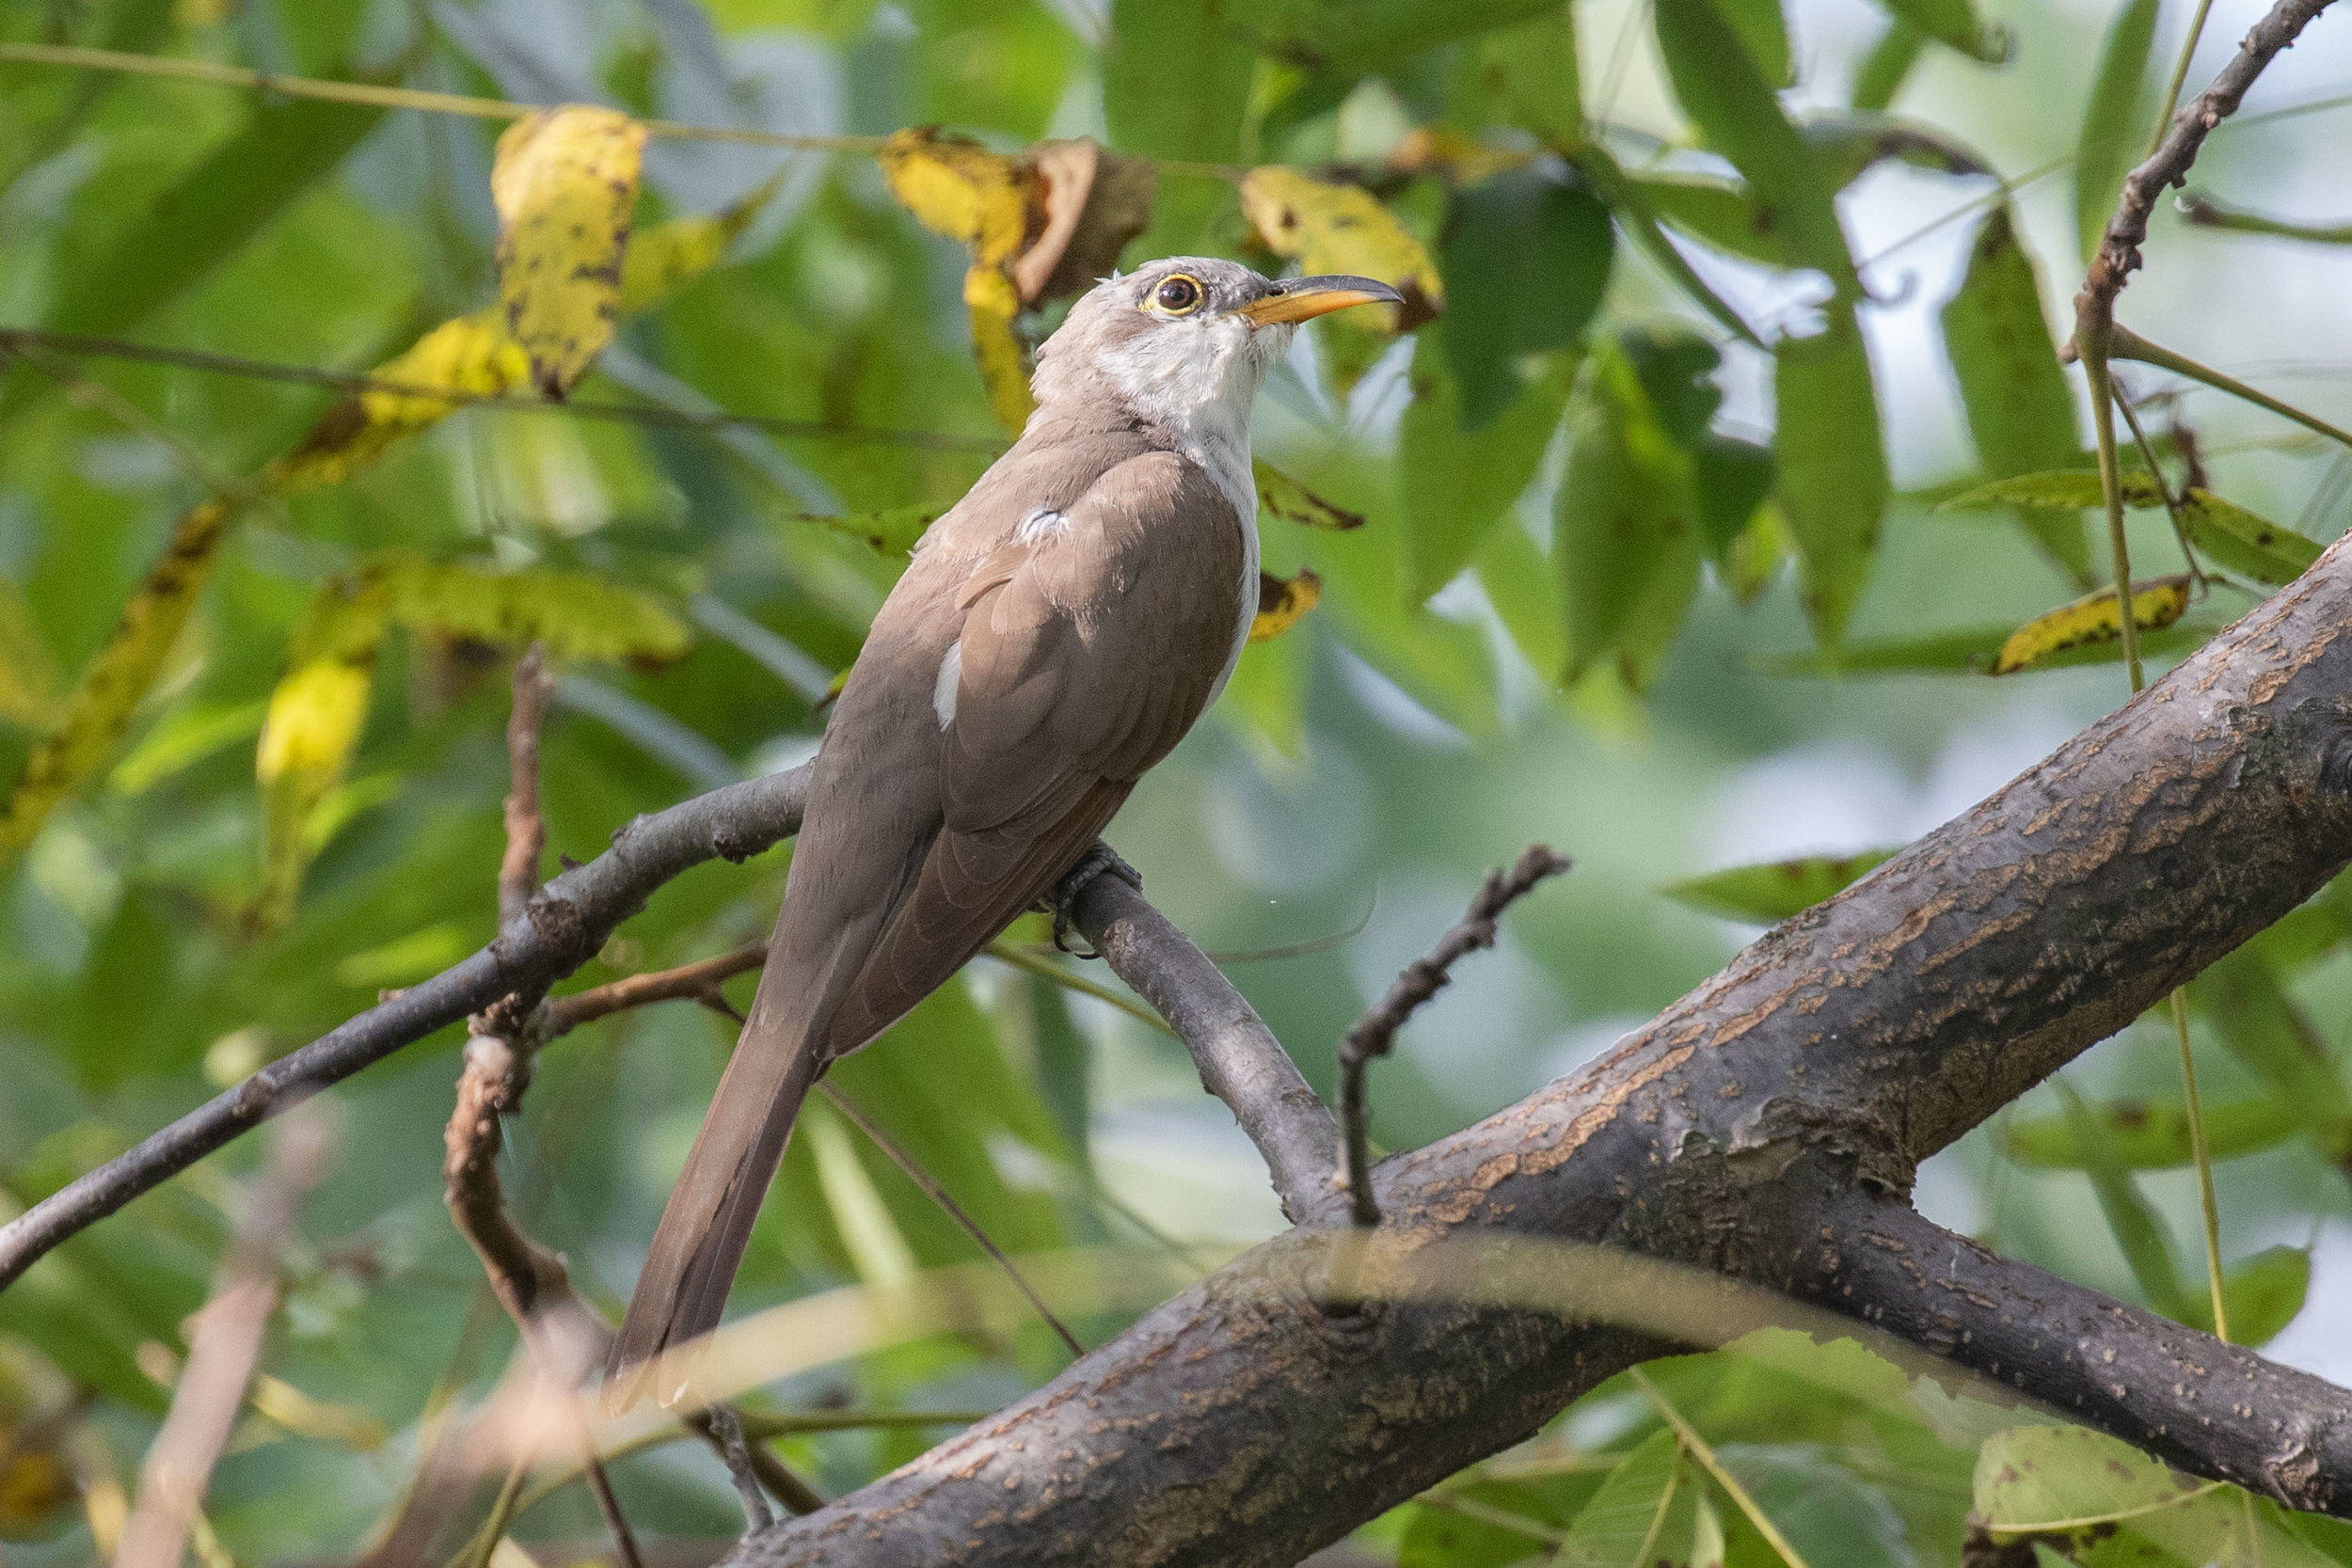 Jarvis Bird Sanctuary and Perkins Woods are both good places to see Yellow-billed Cuckoo in migration. Photo by Josh Engel.